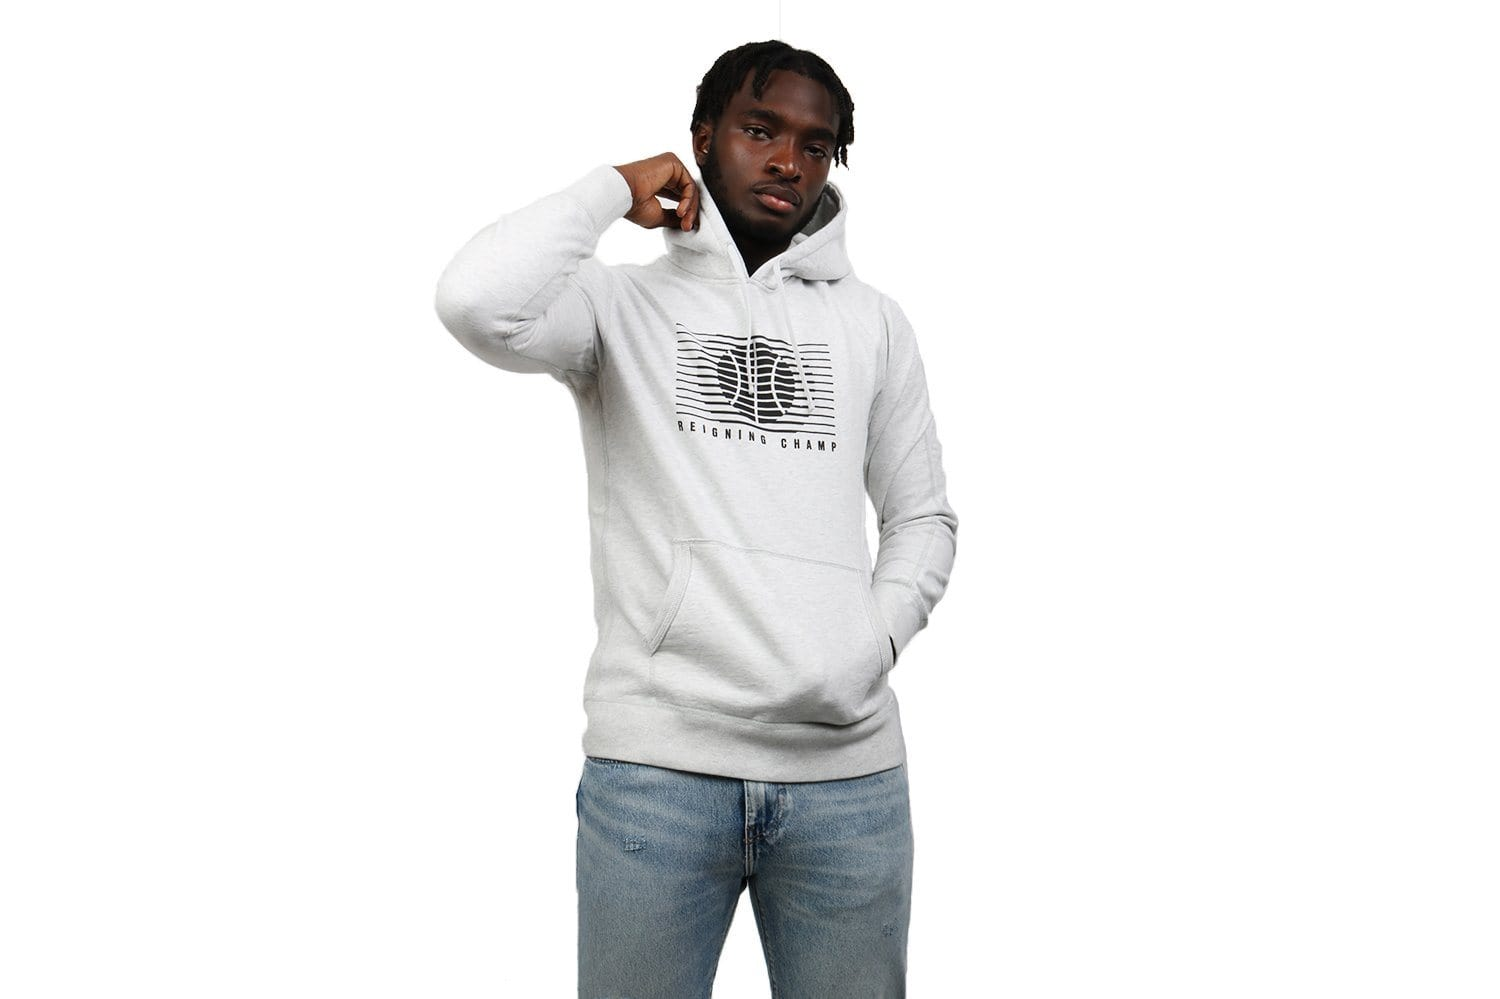 KNIT MID WT TERRY STREET BALL PULLOVER HOODIE-RC-3525 MENS SOFTGOODS REIGNING CHAMP